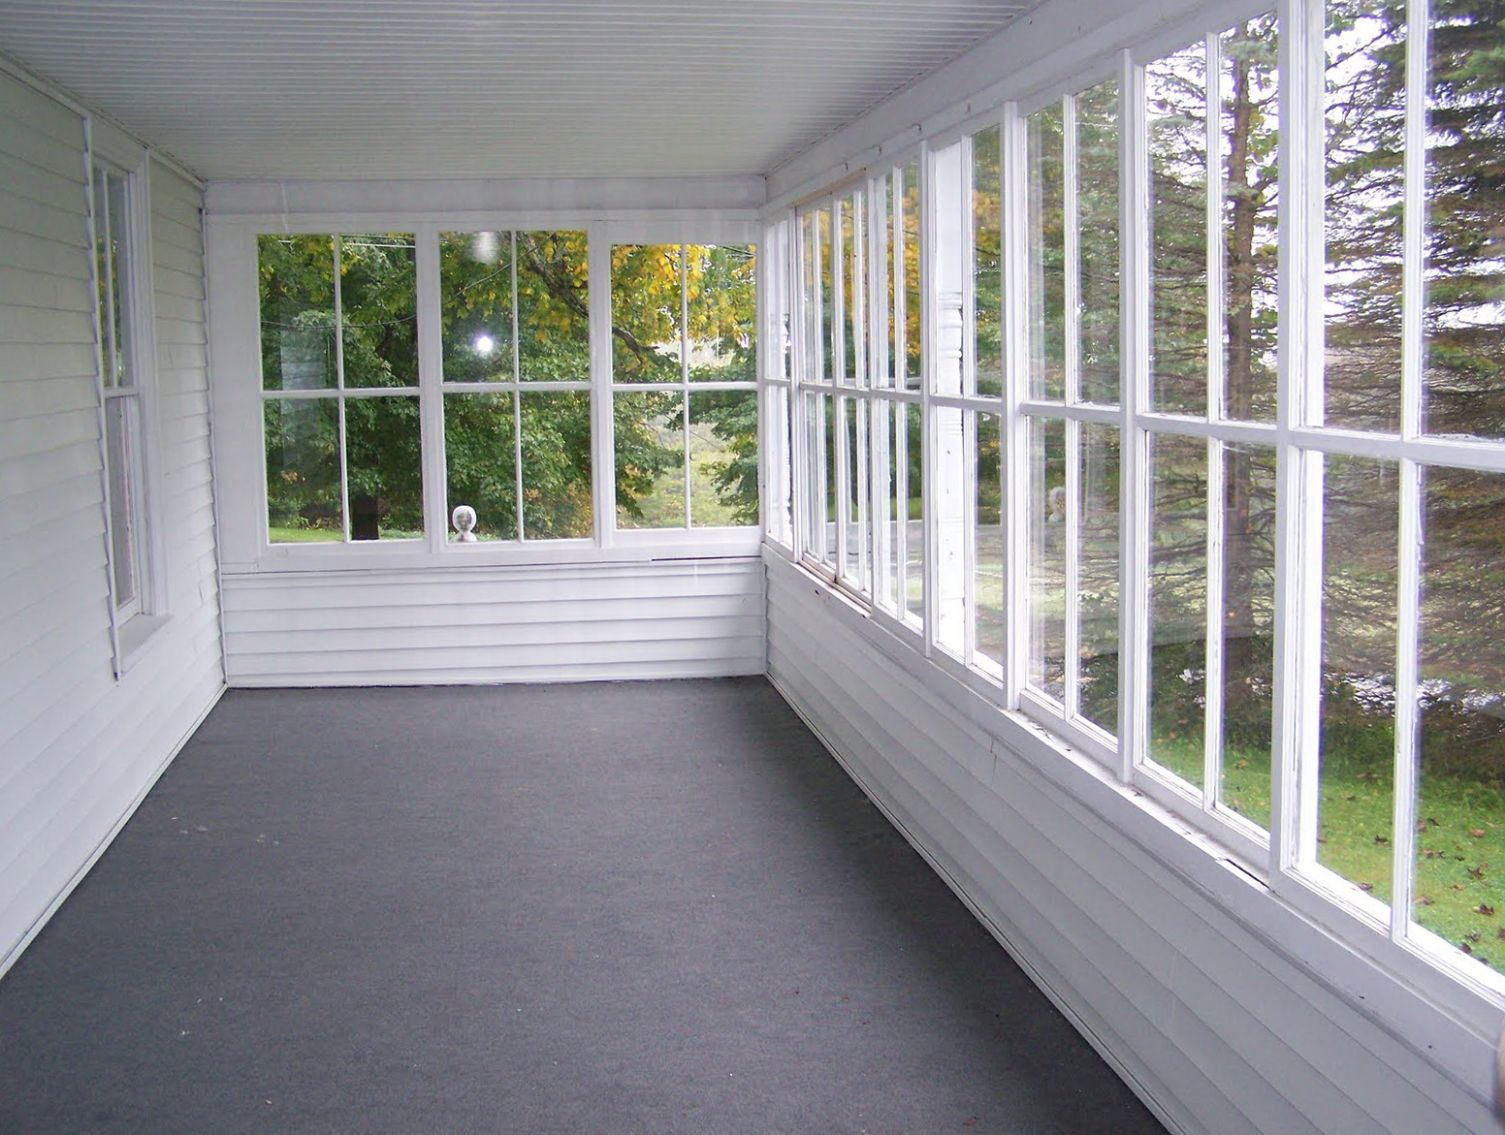 Magnificent Enclosed Porch Ideas Plain Decoration Small Fall Door ..